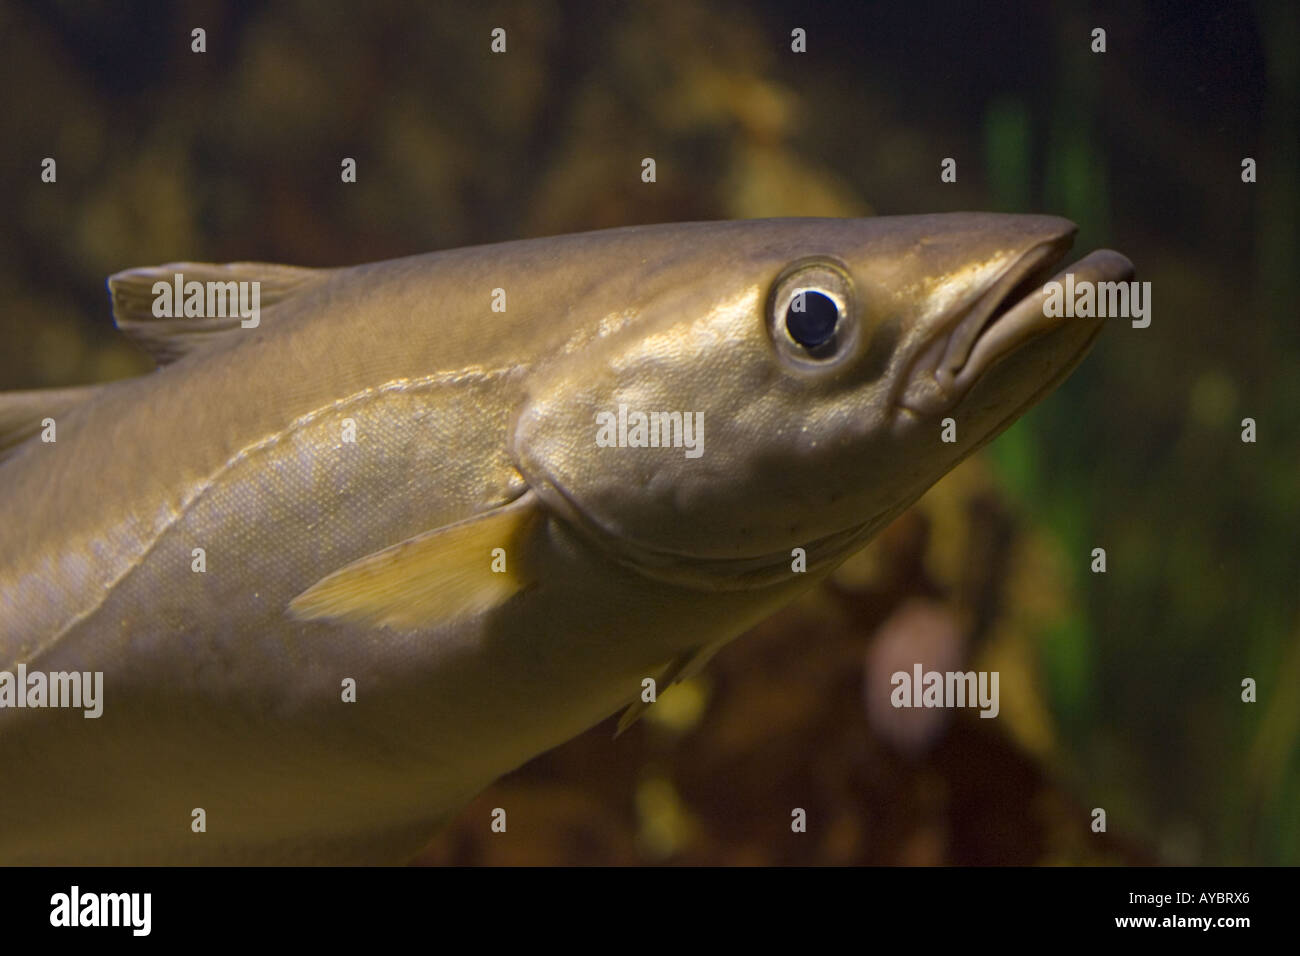 Head of Pollack Pollachius pollachius a member of the cod family Aquariumgalicia Reboredo Galicia Spain - Stock Image